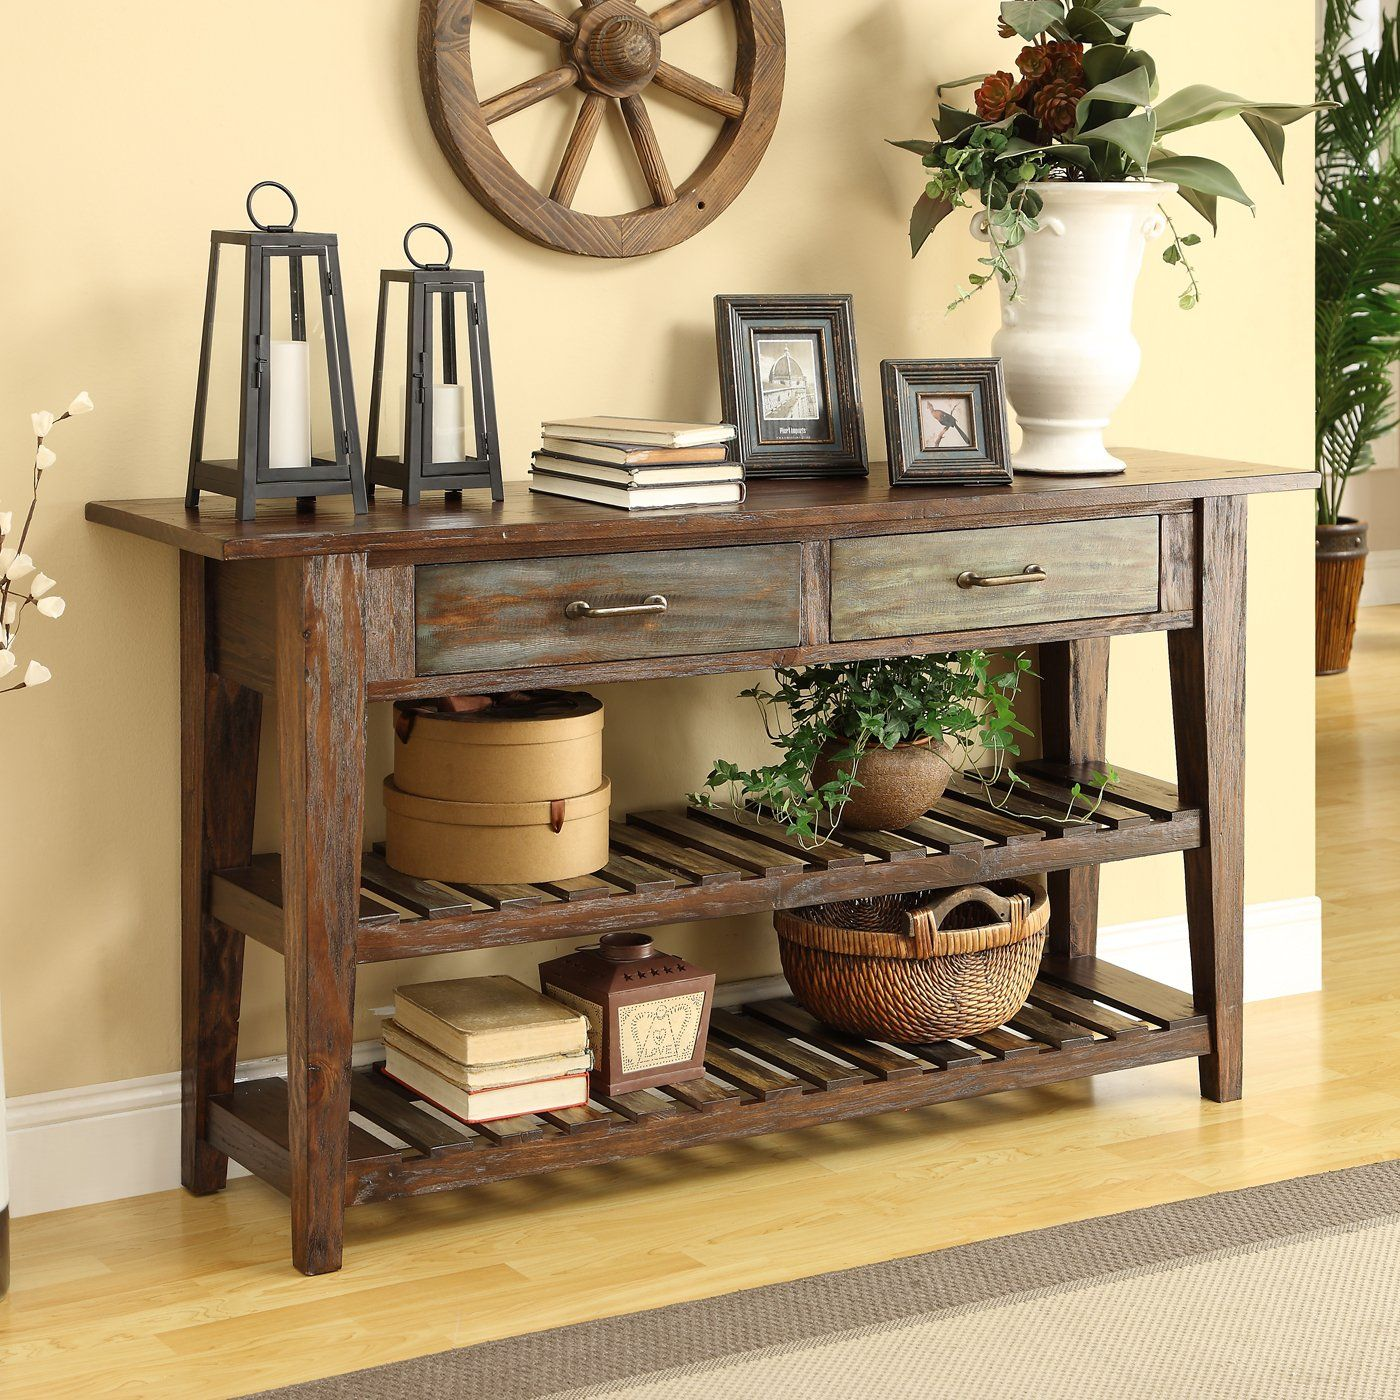 Coast To 46226 2 Drawer Console Table At Atg S Browse Our Entryway Tables All With Free Shipping And Best Price Guaranteed